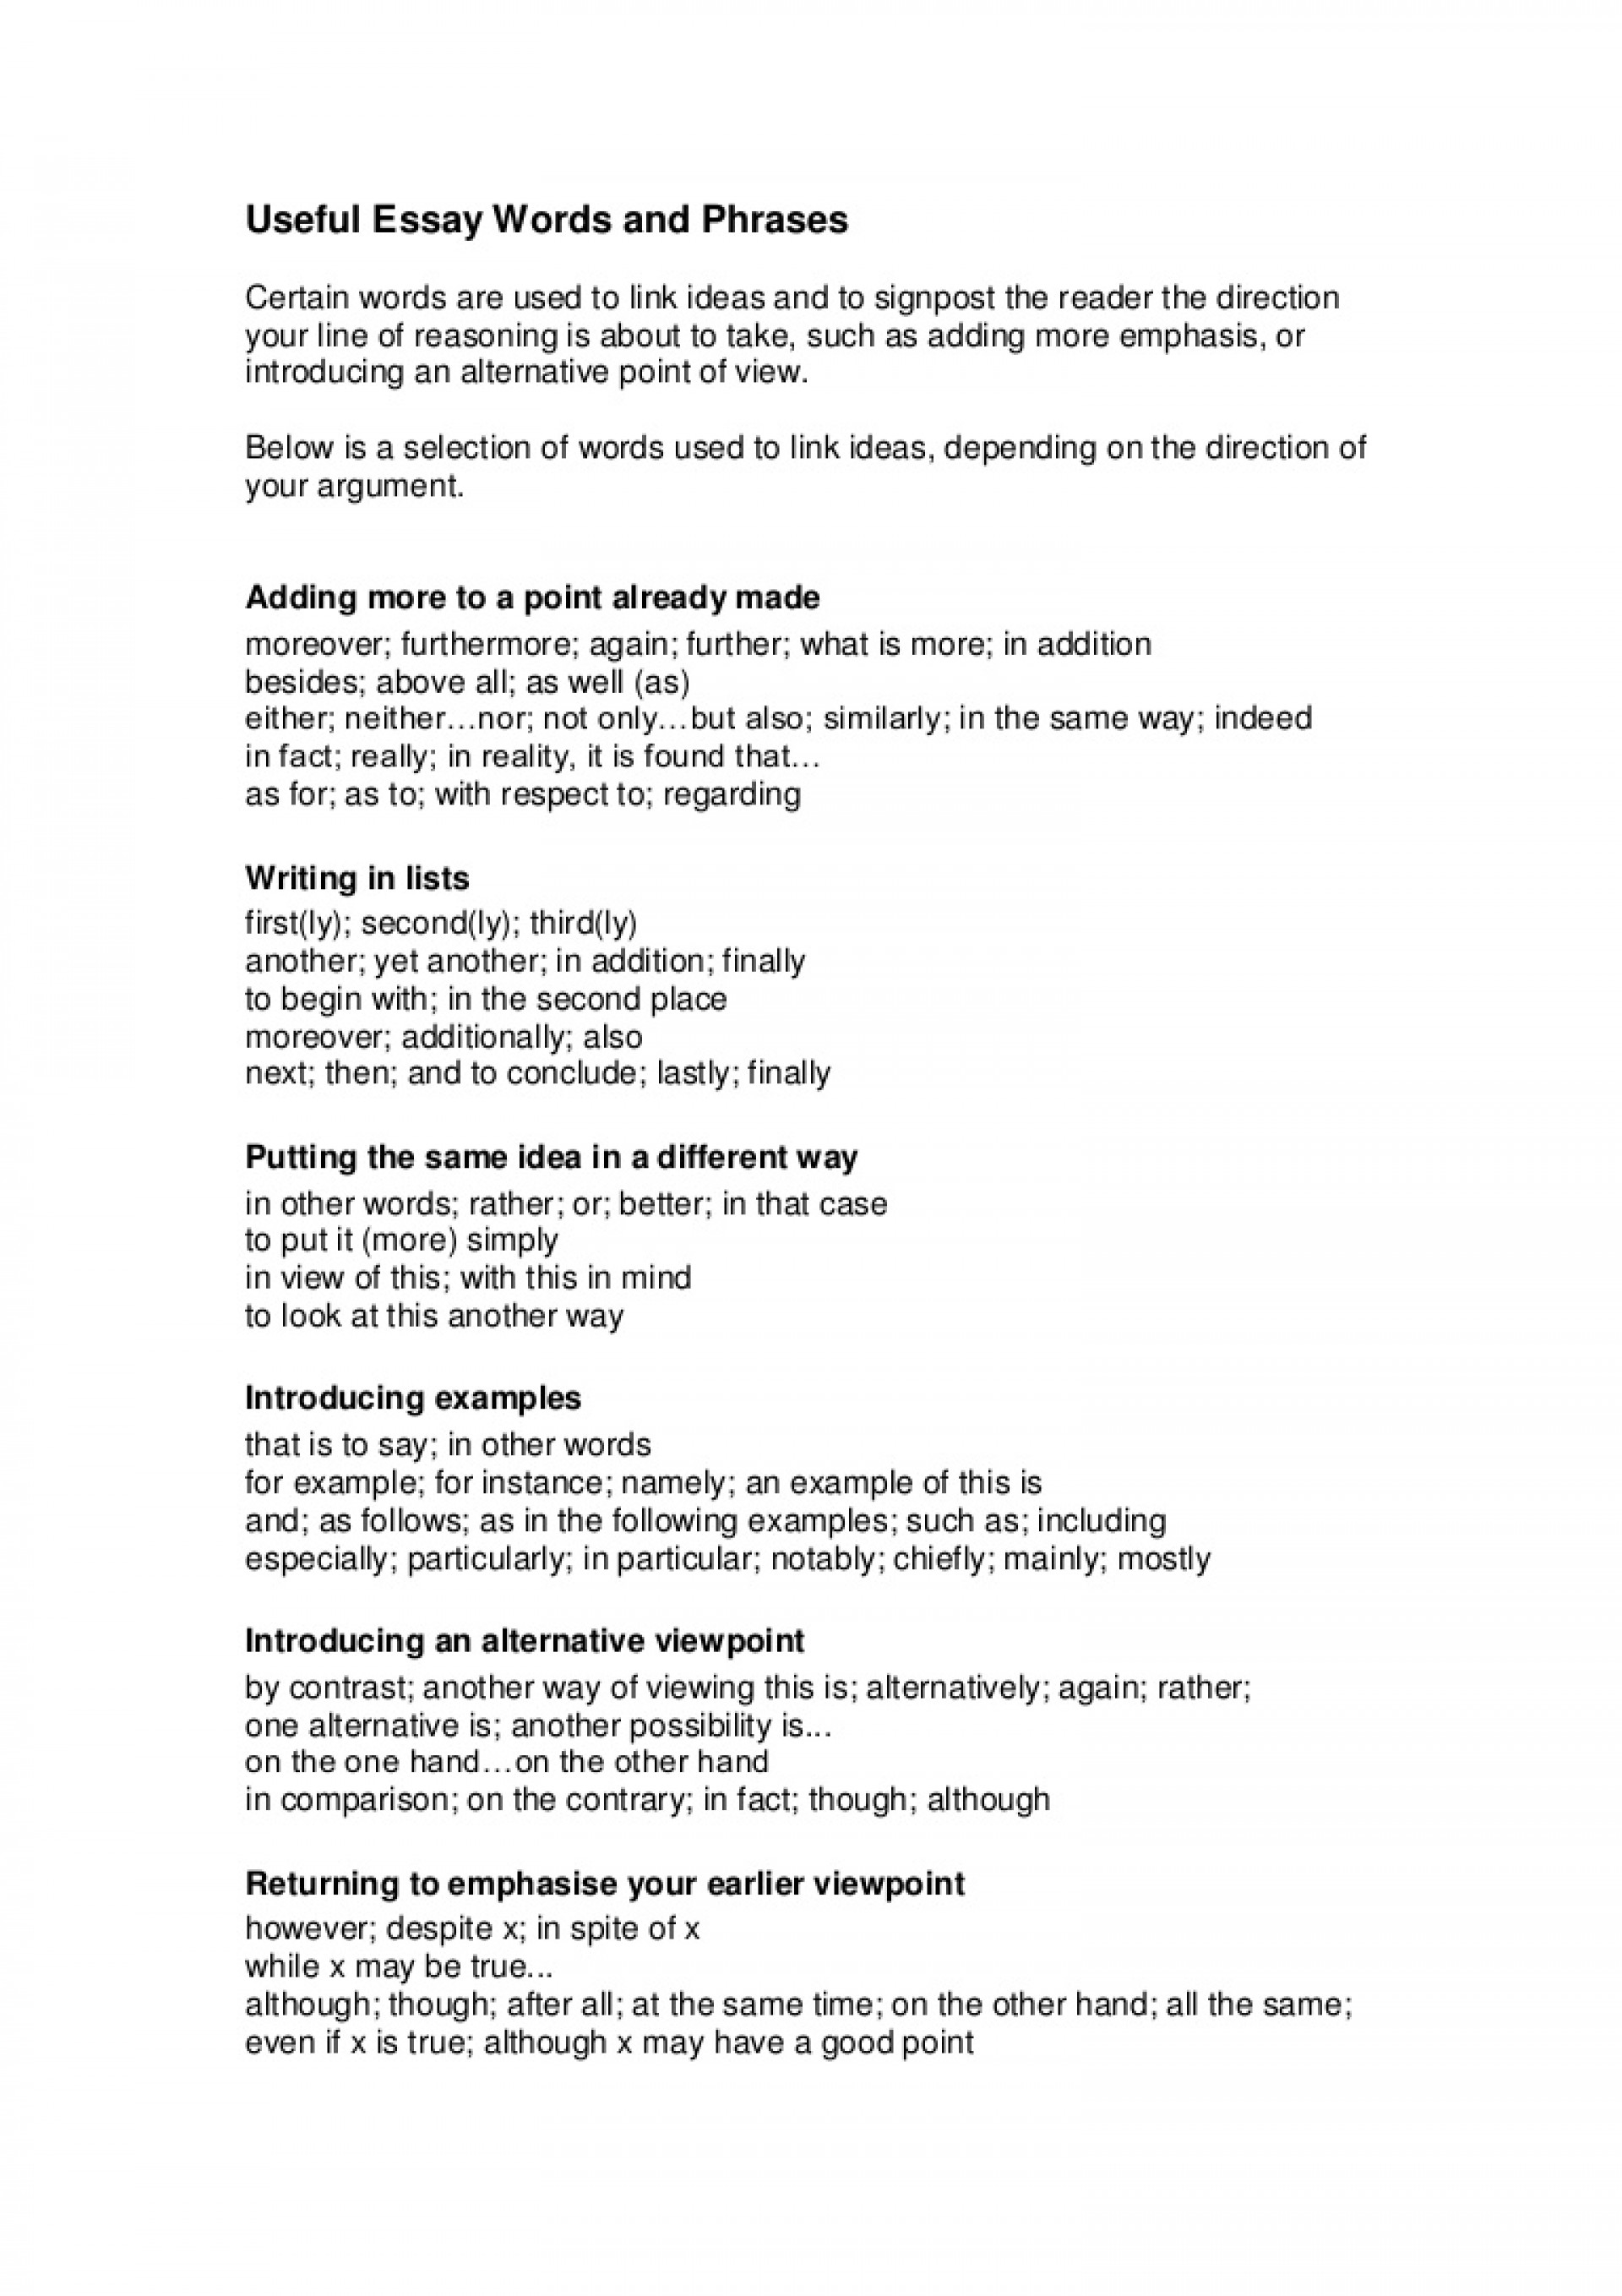 004 Words To Not Use In Essays Writtenassignments2usefulessaywordsandphrases Phpapp02 Thumbnail Essay Unique Persuasive An Expository 1920